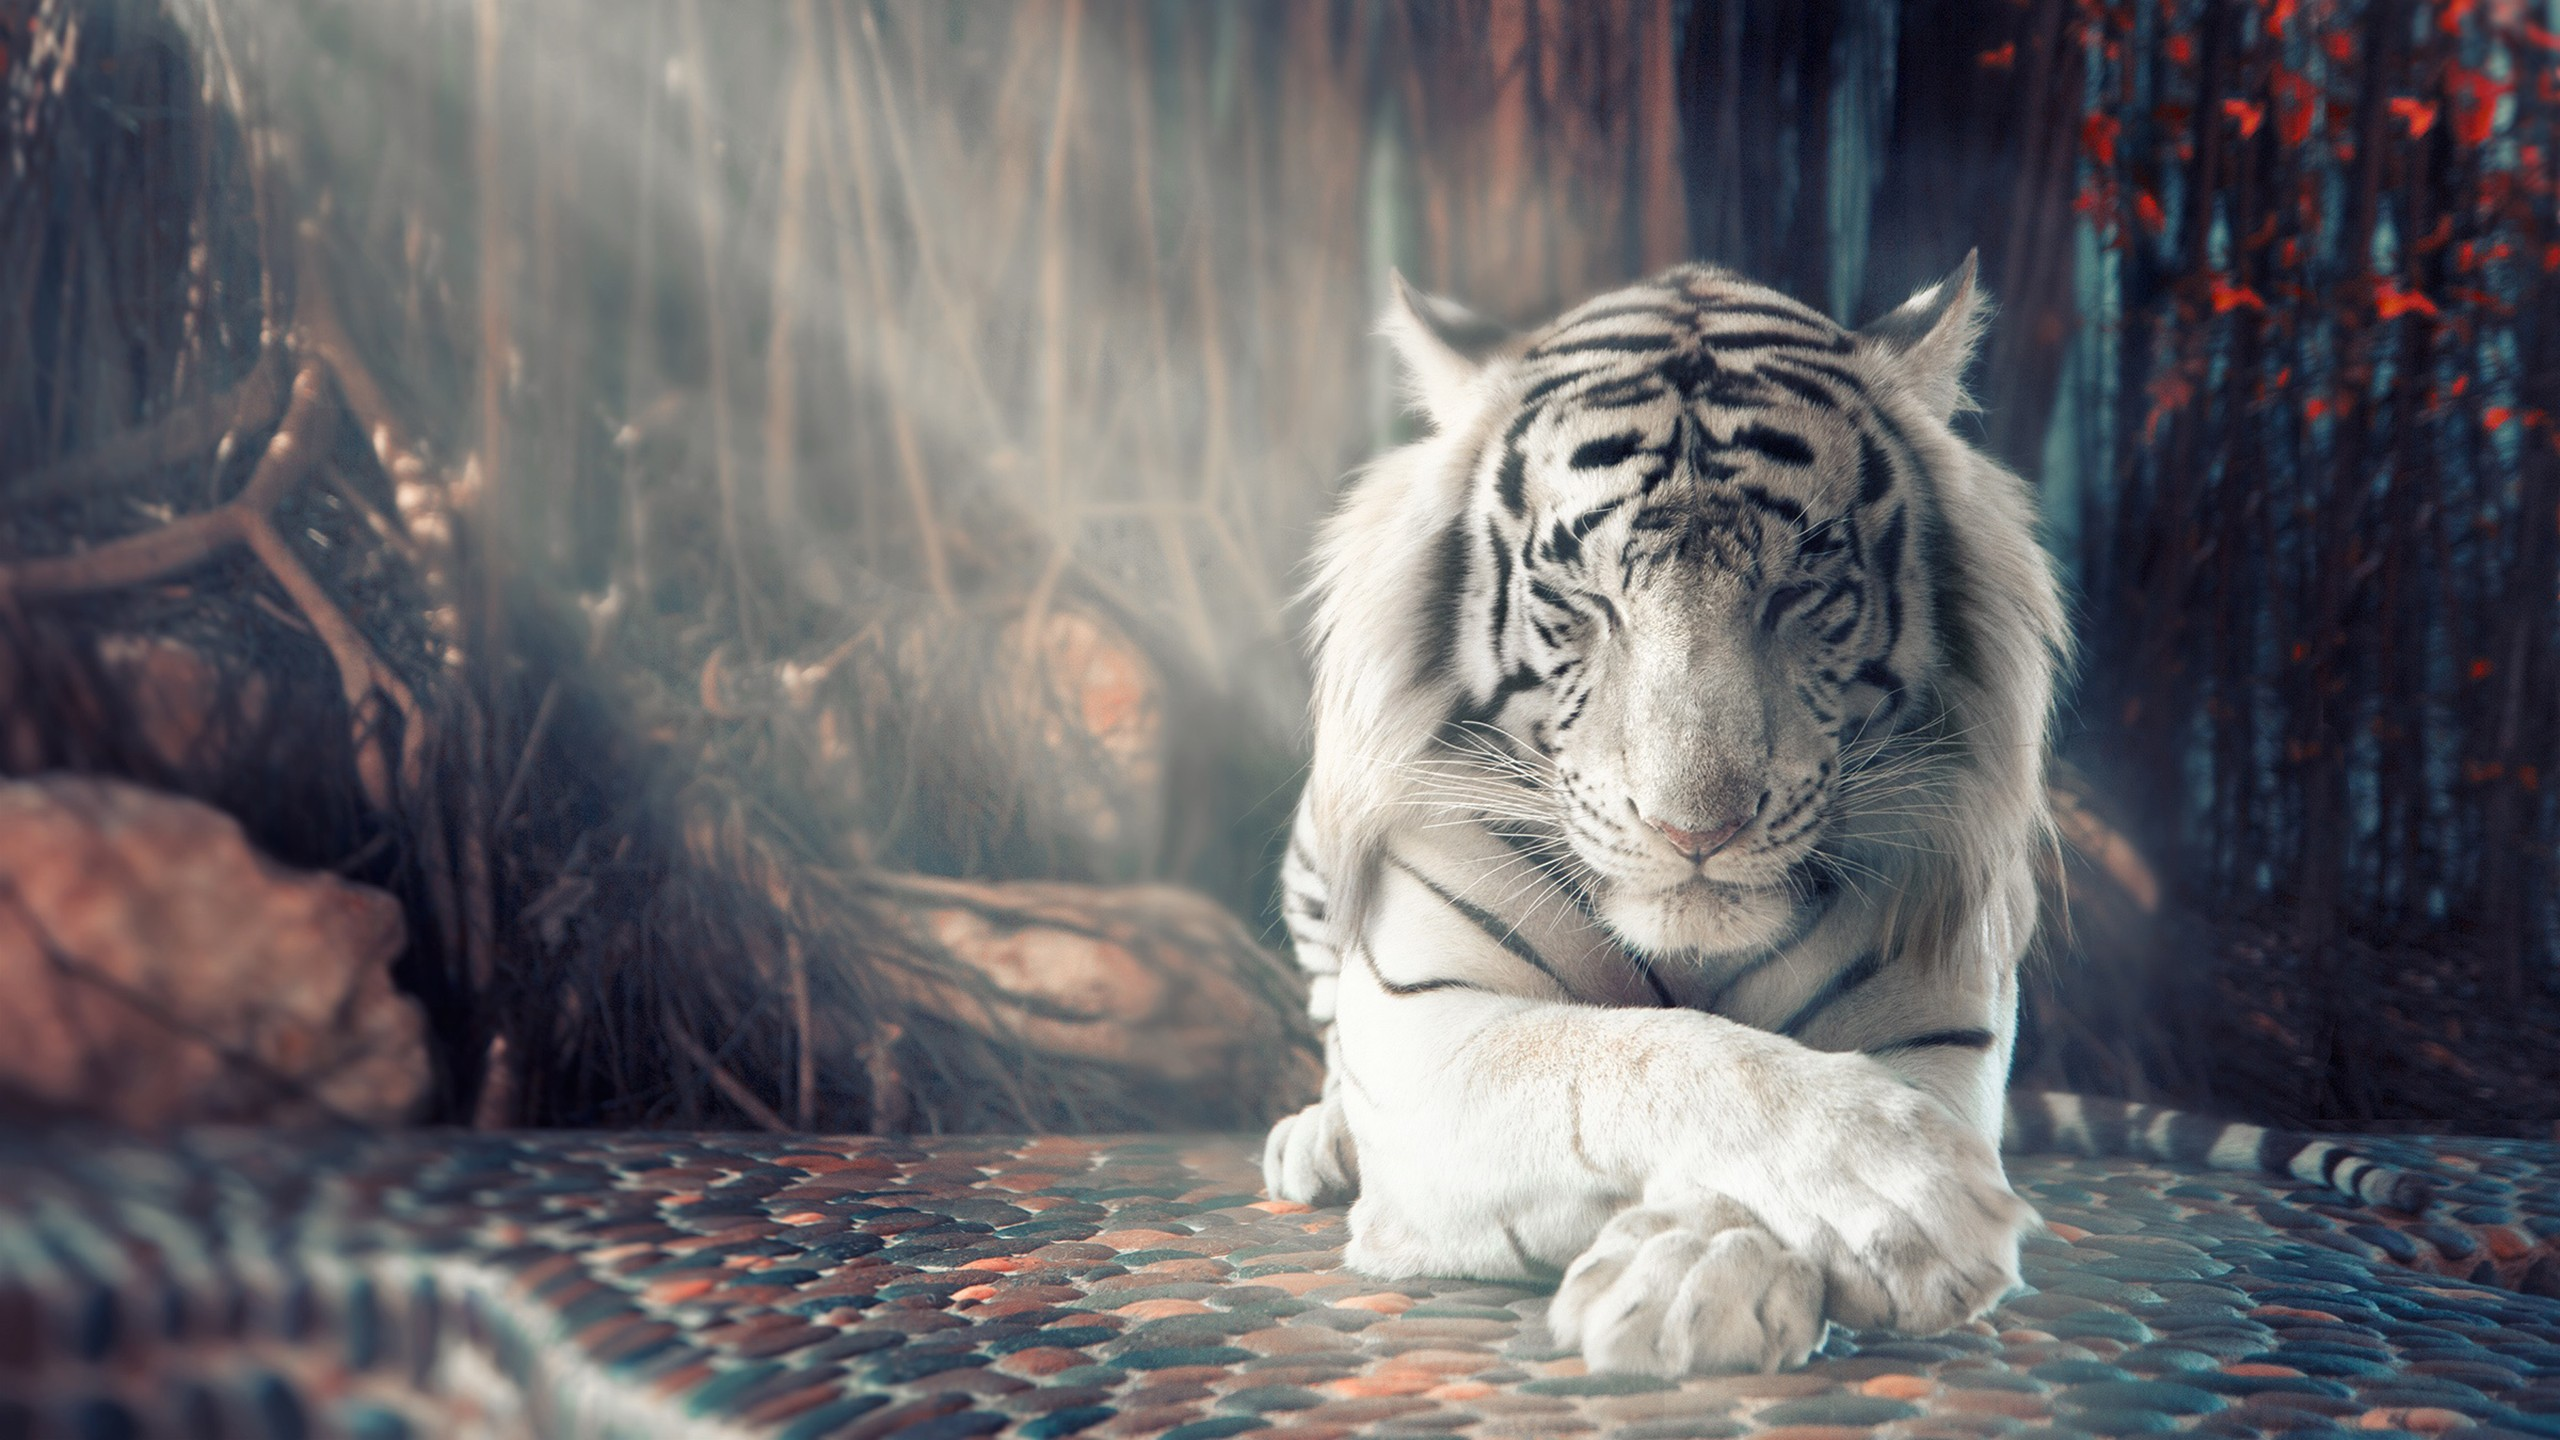 Wallpaper Space 3d White Tiger Wallpapers Hd Wallpapers Id 25346